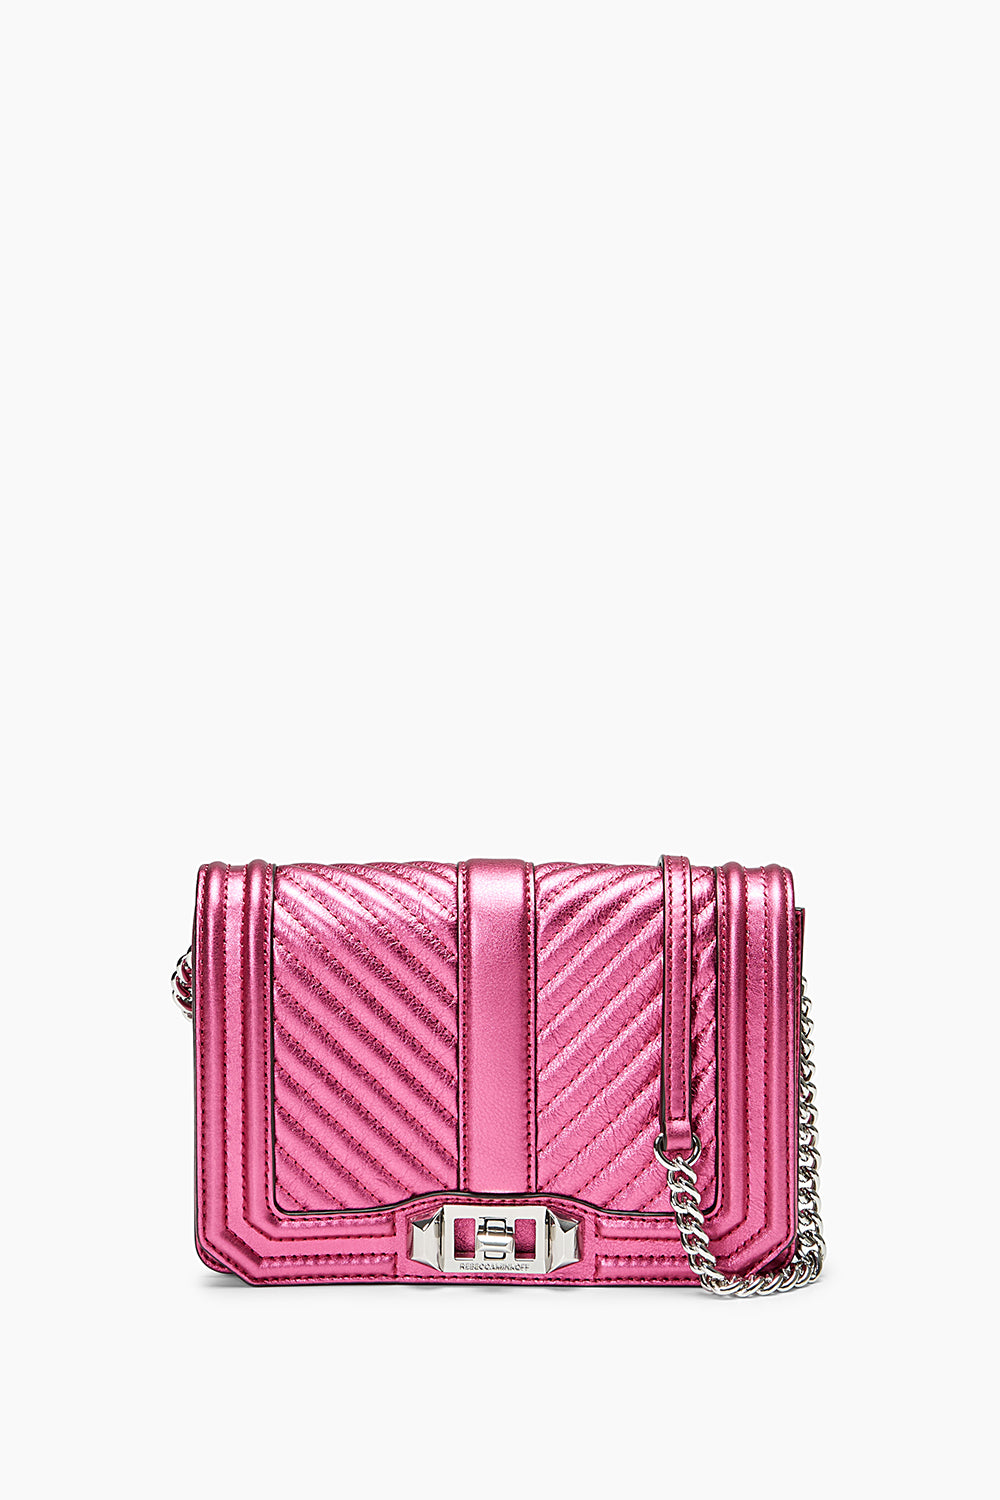 Chevron Quilted Small Love Crossbody Rebecca Minkoff